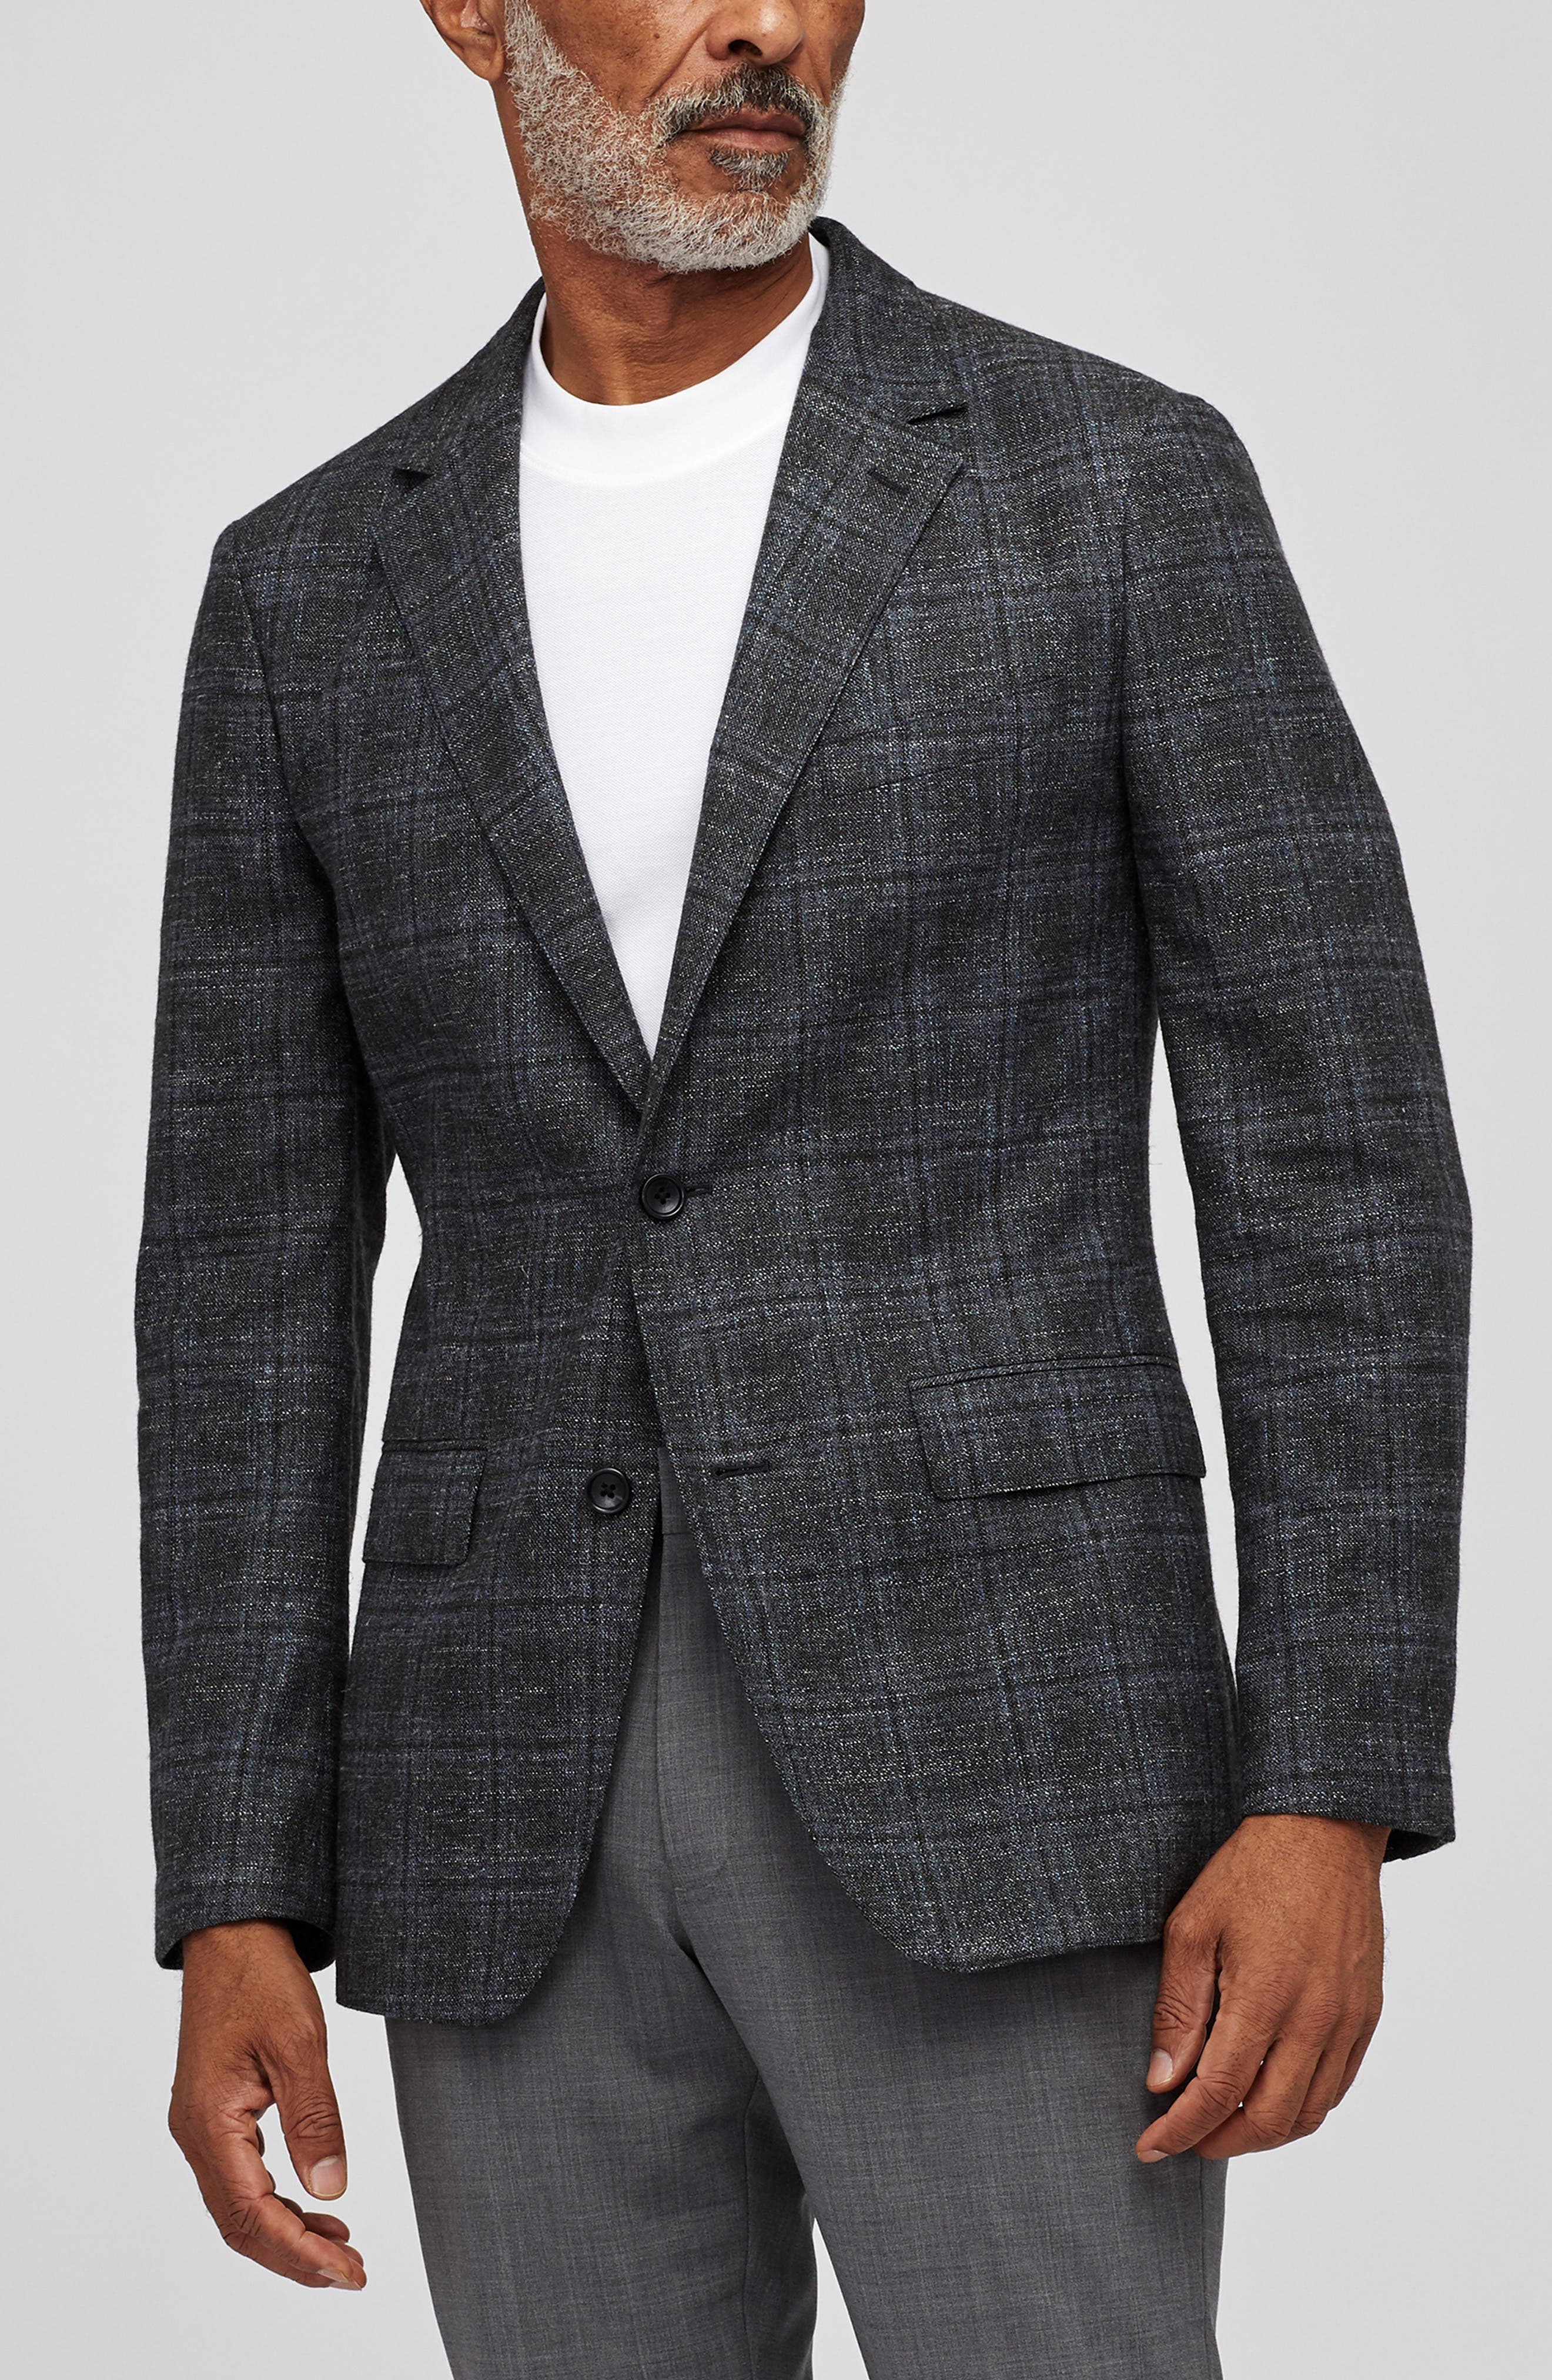 Slim Fit Unconstructed Plaid Blazer,                             Alternate thumbnail 3, color,                             OLIVE AND GREY